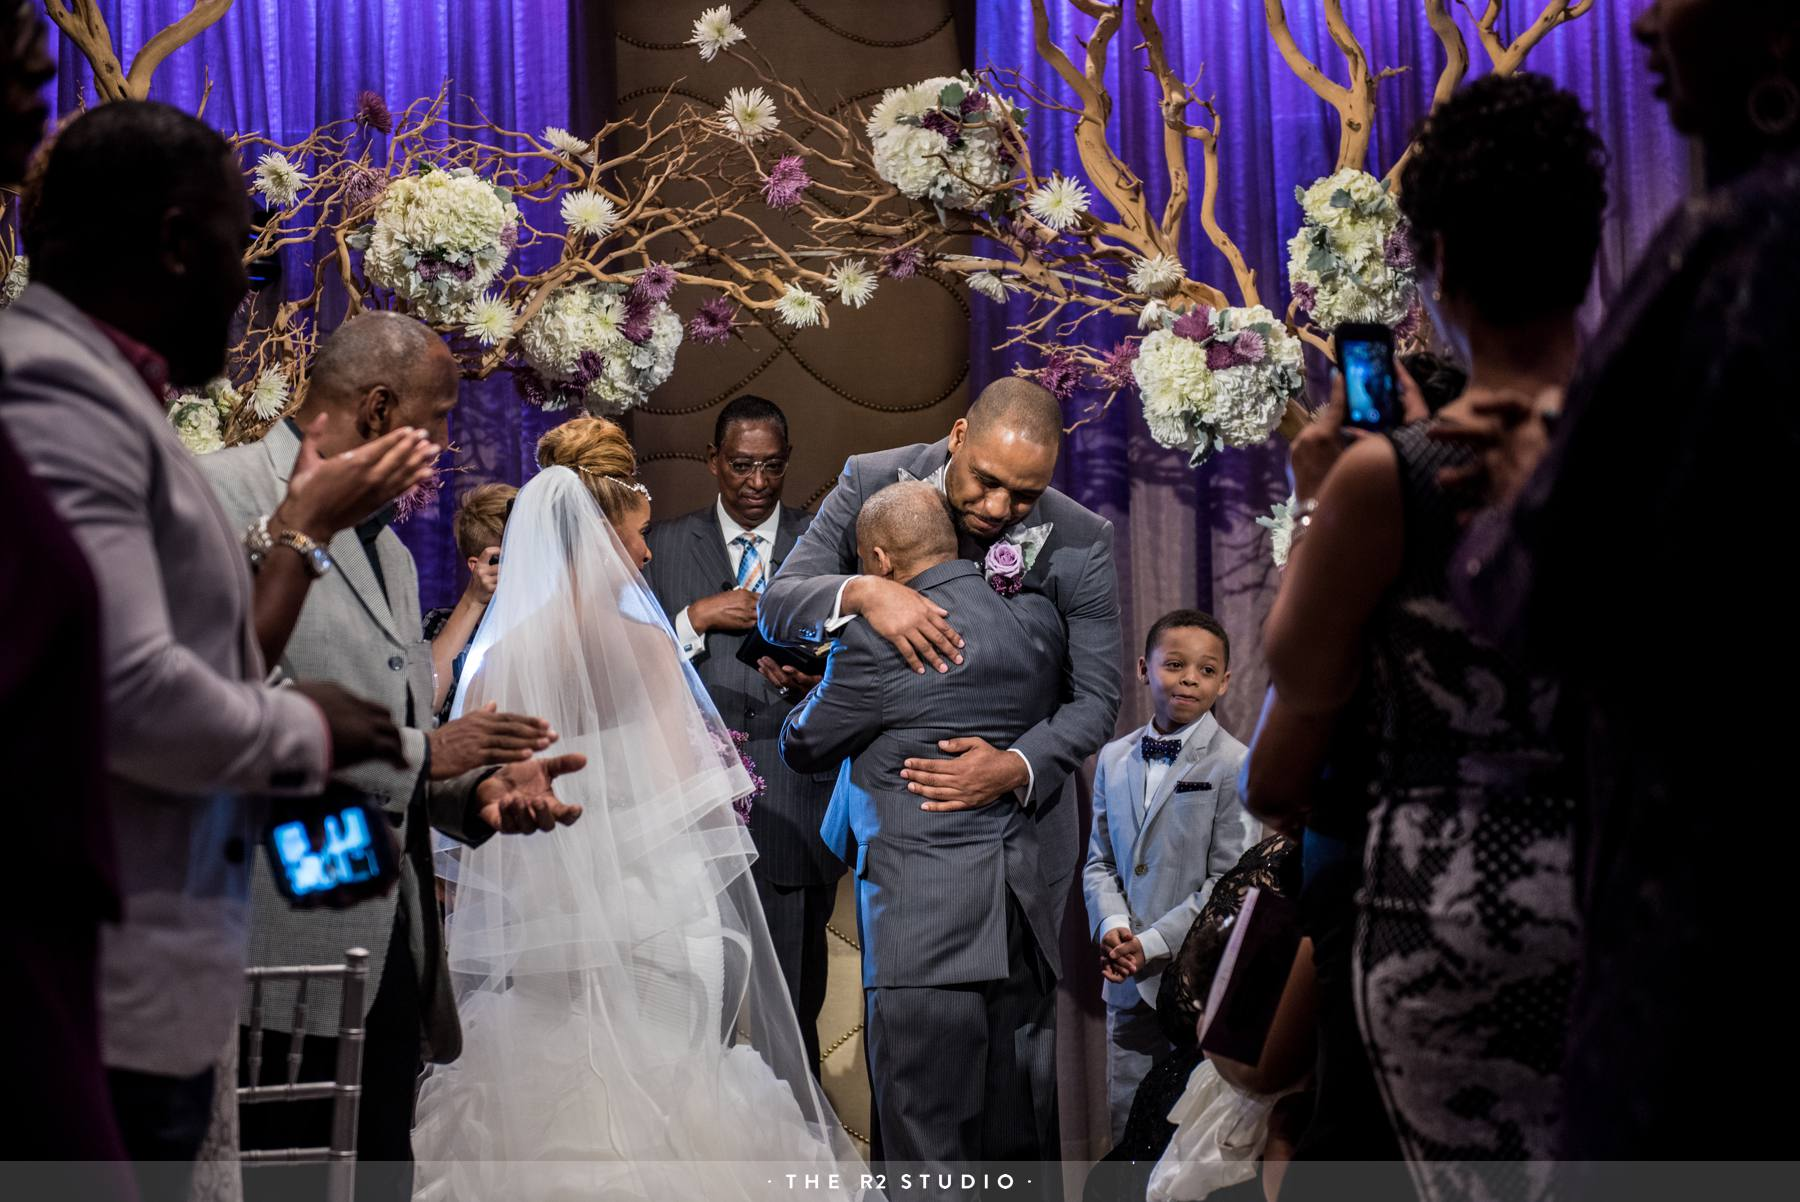 Aria Las Vegas Wedding Photos By The Best Photographers R2 Studio